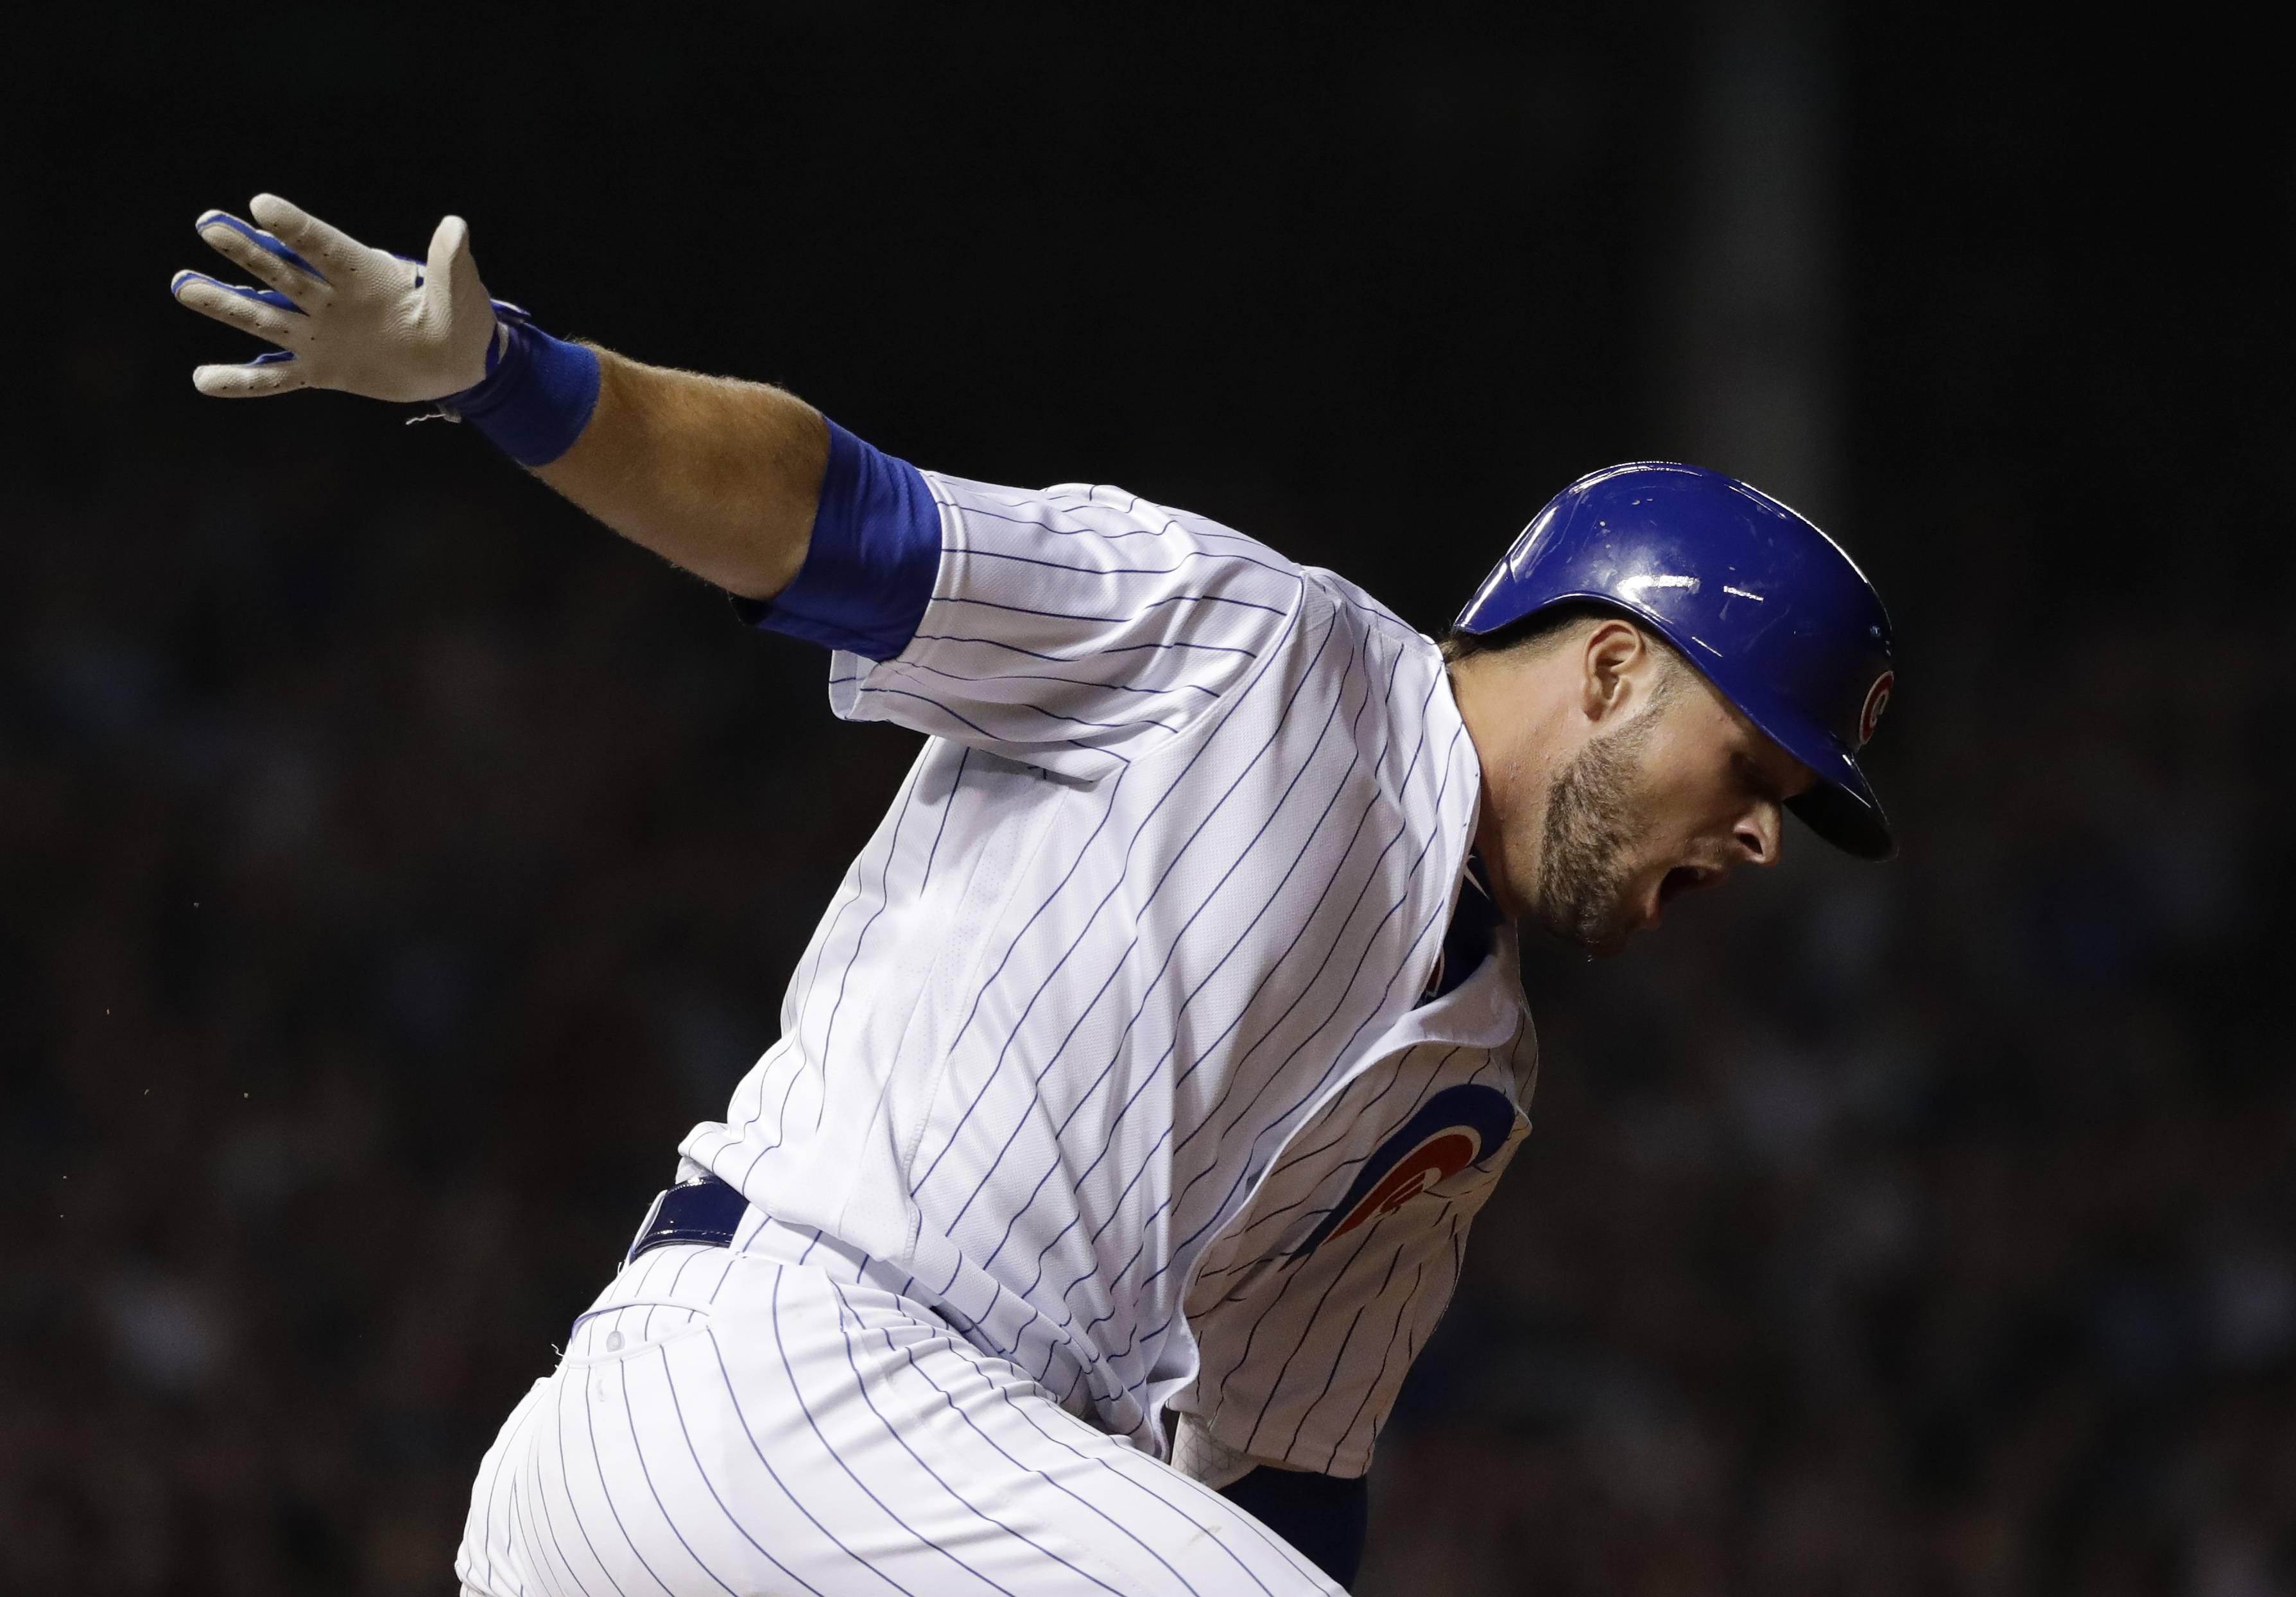 Instead of basking in his successes during his rookie season with the Chicago Cubs, like his hero-making walk-off grand slam against the Nationals, above David Bote took to tasking and making the adjustments need to improve for 2019 and stick with the team.